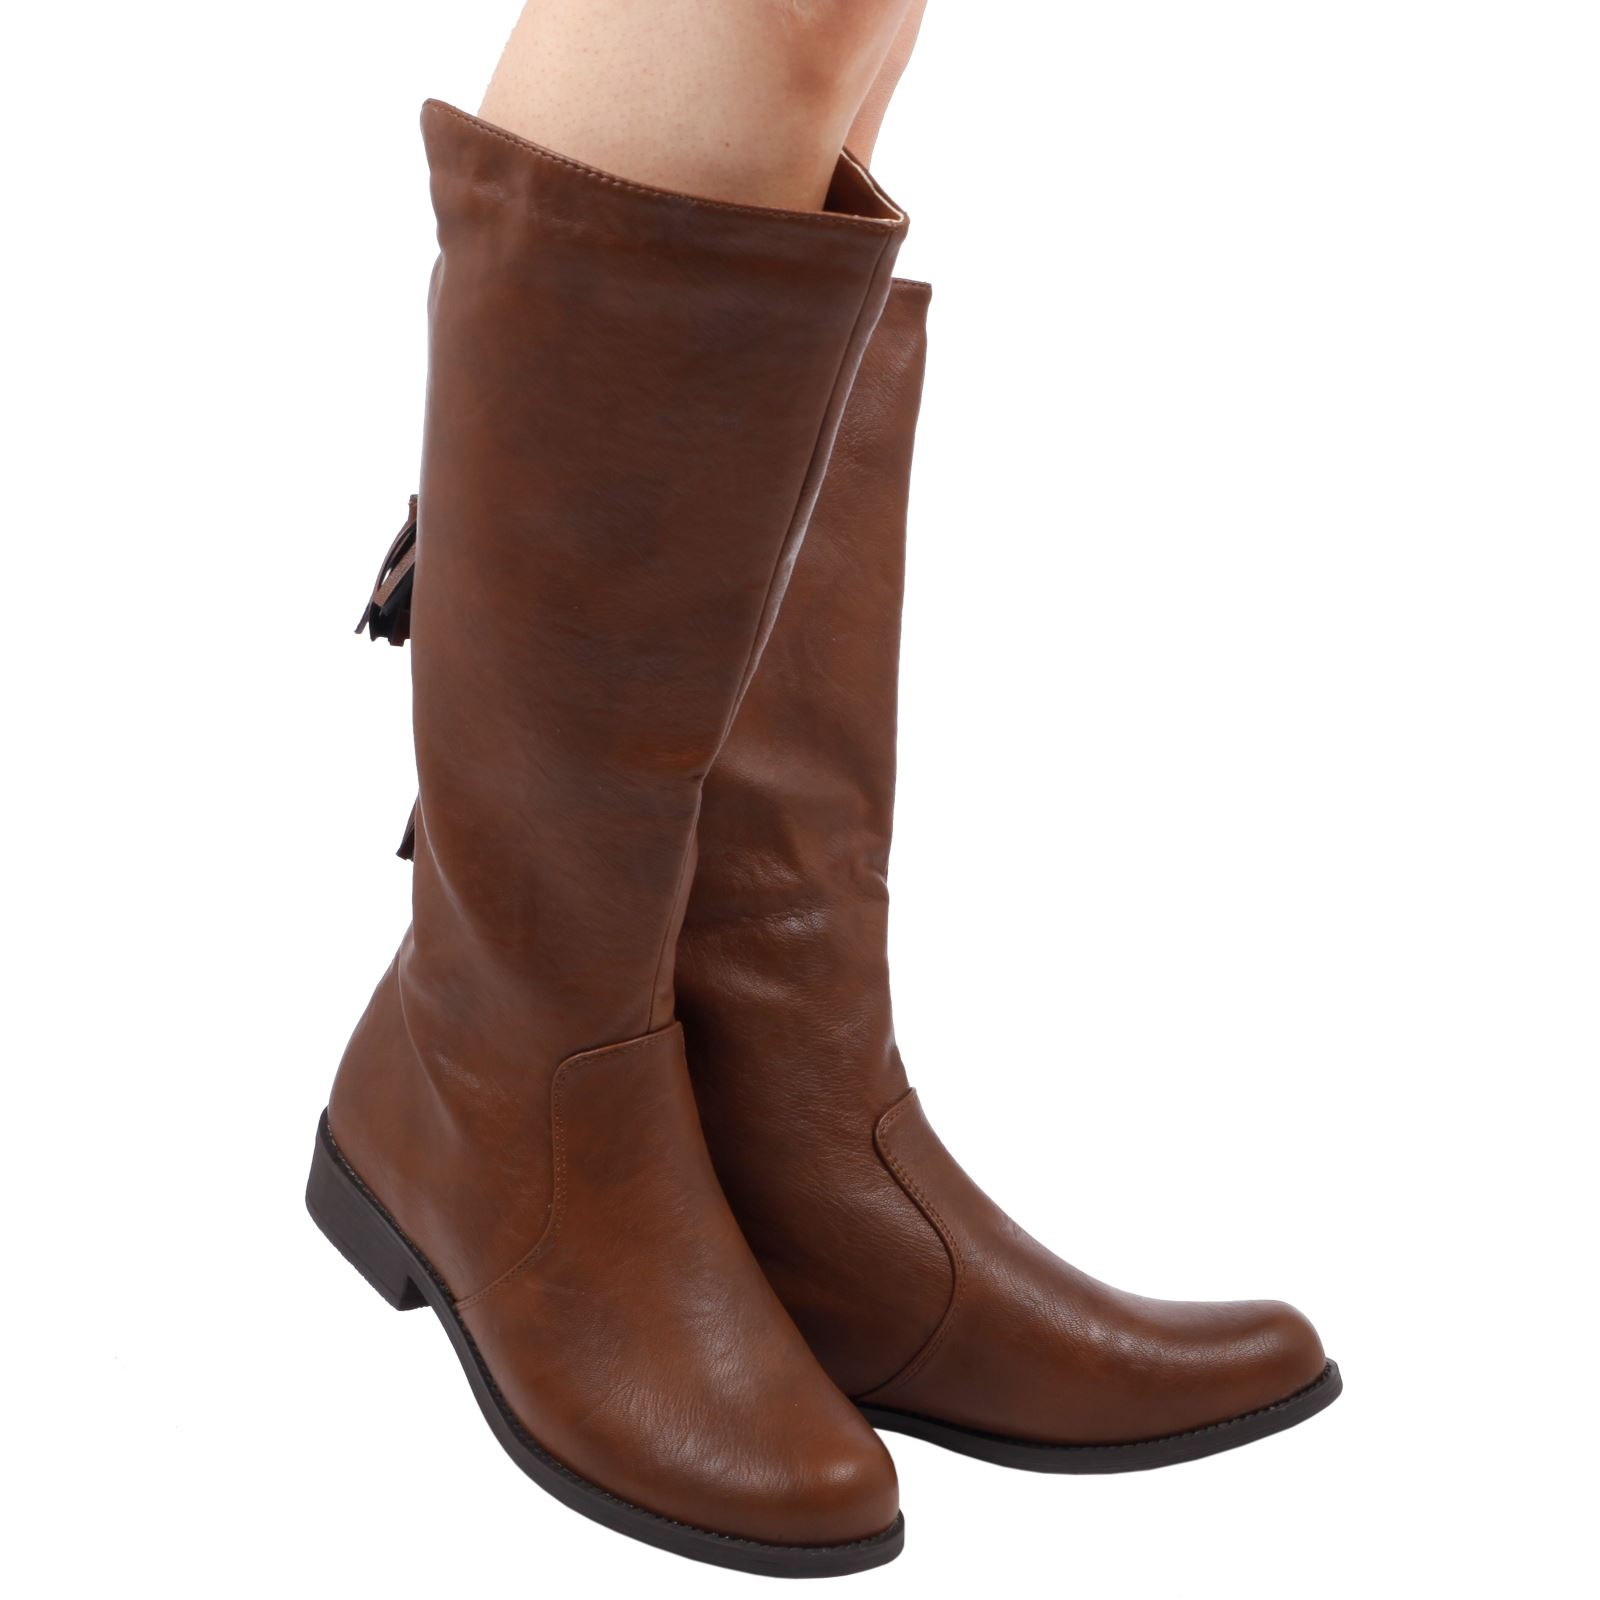 Creative WOMENS BOOTS LADIES KNEE HIGH BIKER RIDING FASHION BOOTS CALF SHOES STYLE SIZE | EBay